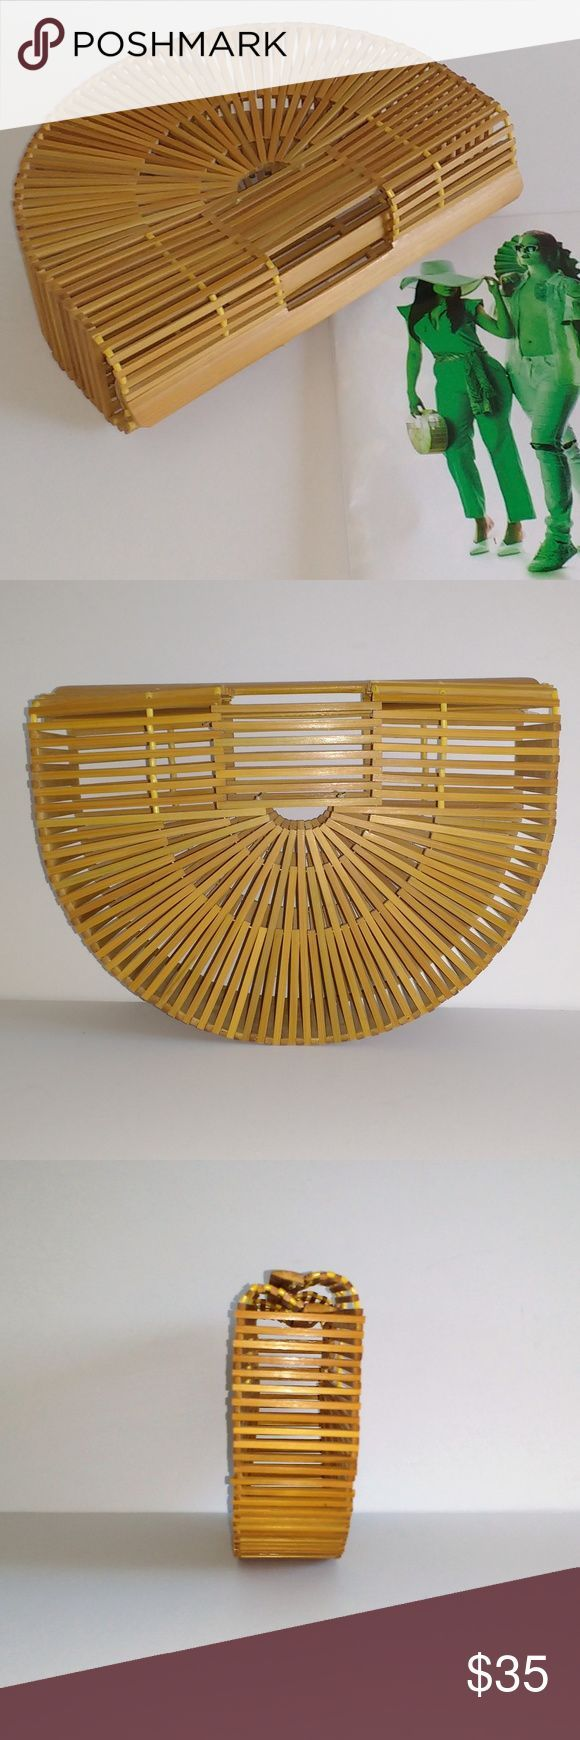 semicircle bamboo clutch I39ve got to tell you my mom gave me one of these  semicircle bamboo clutch Ive got to tell you my mom gave me one of these